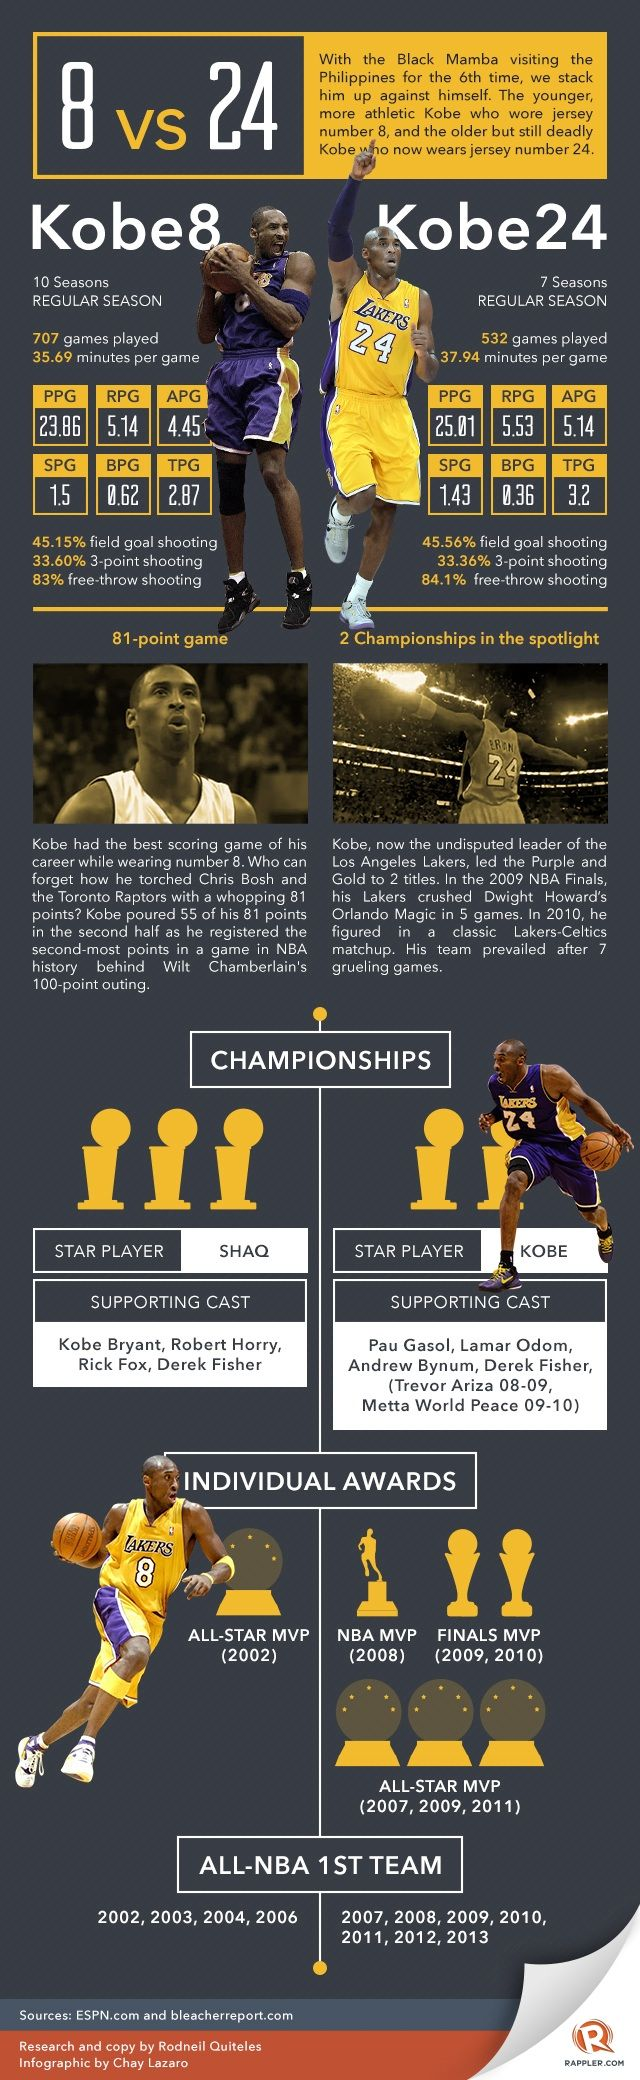 KOBE BRYANT, 8 VS 24. What era/legacy was better in your opinon?